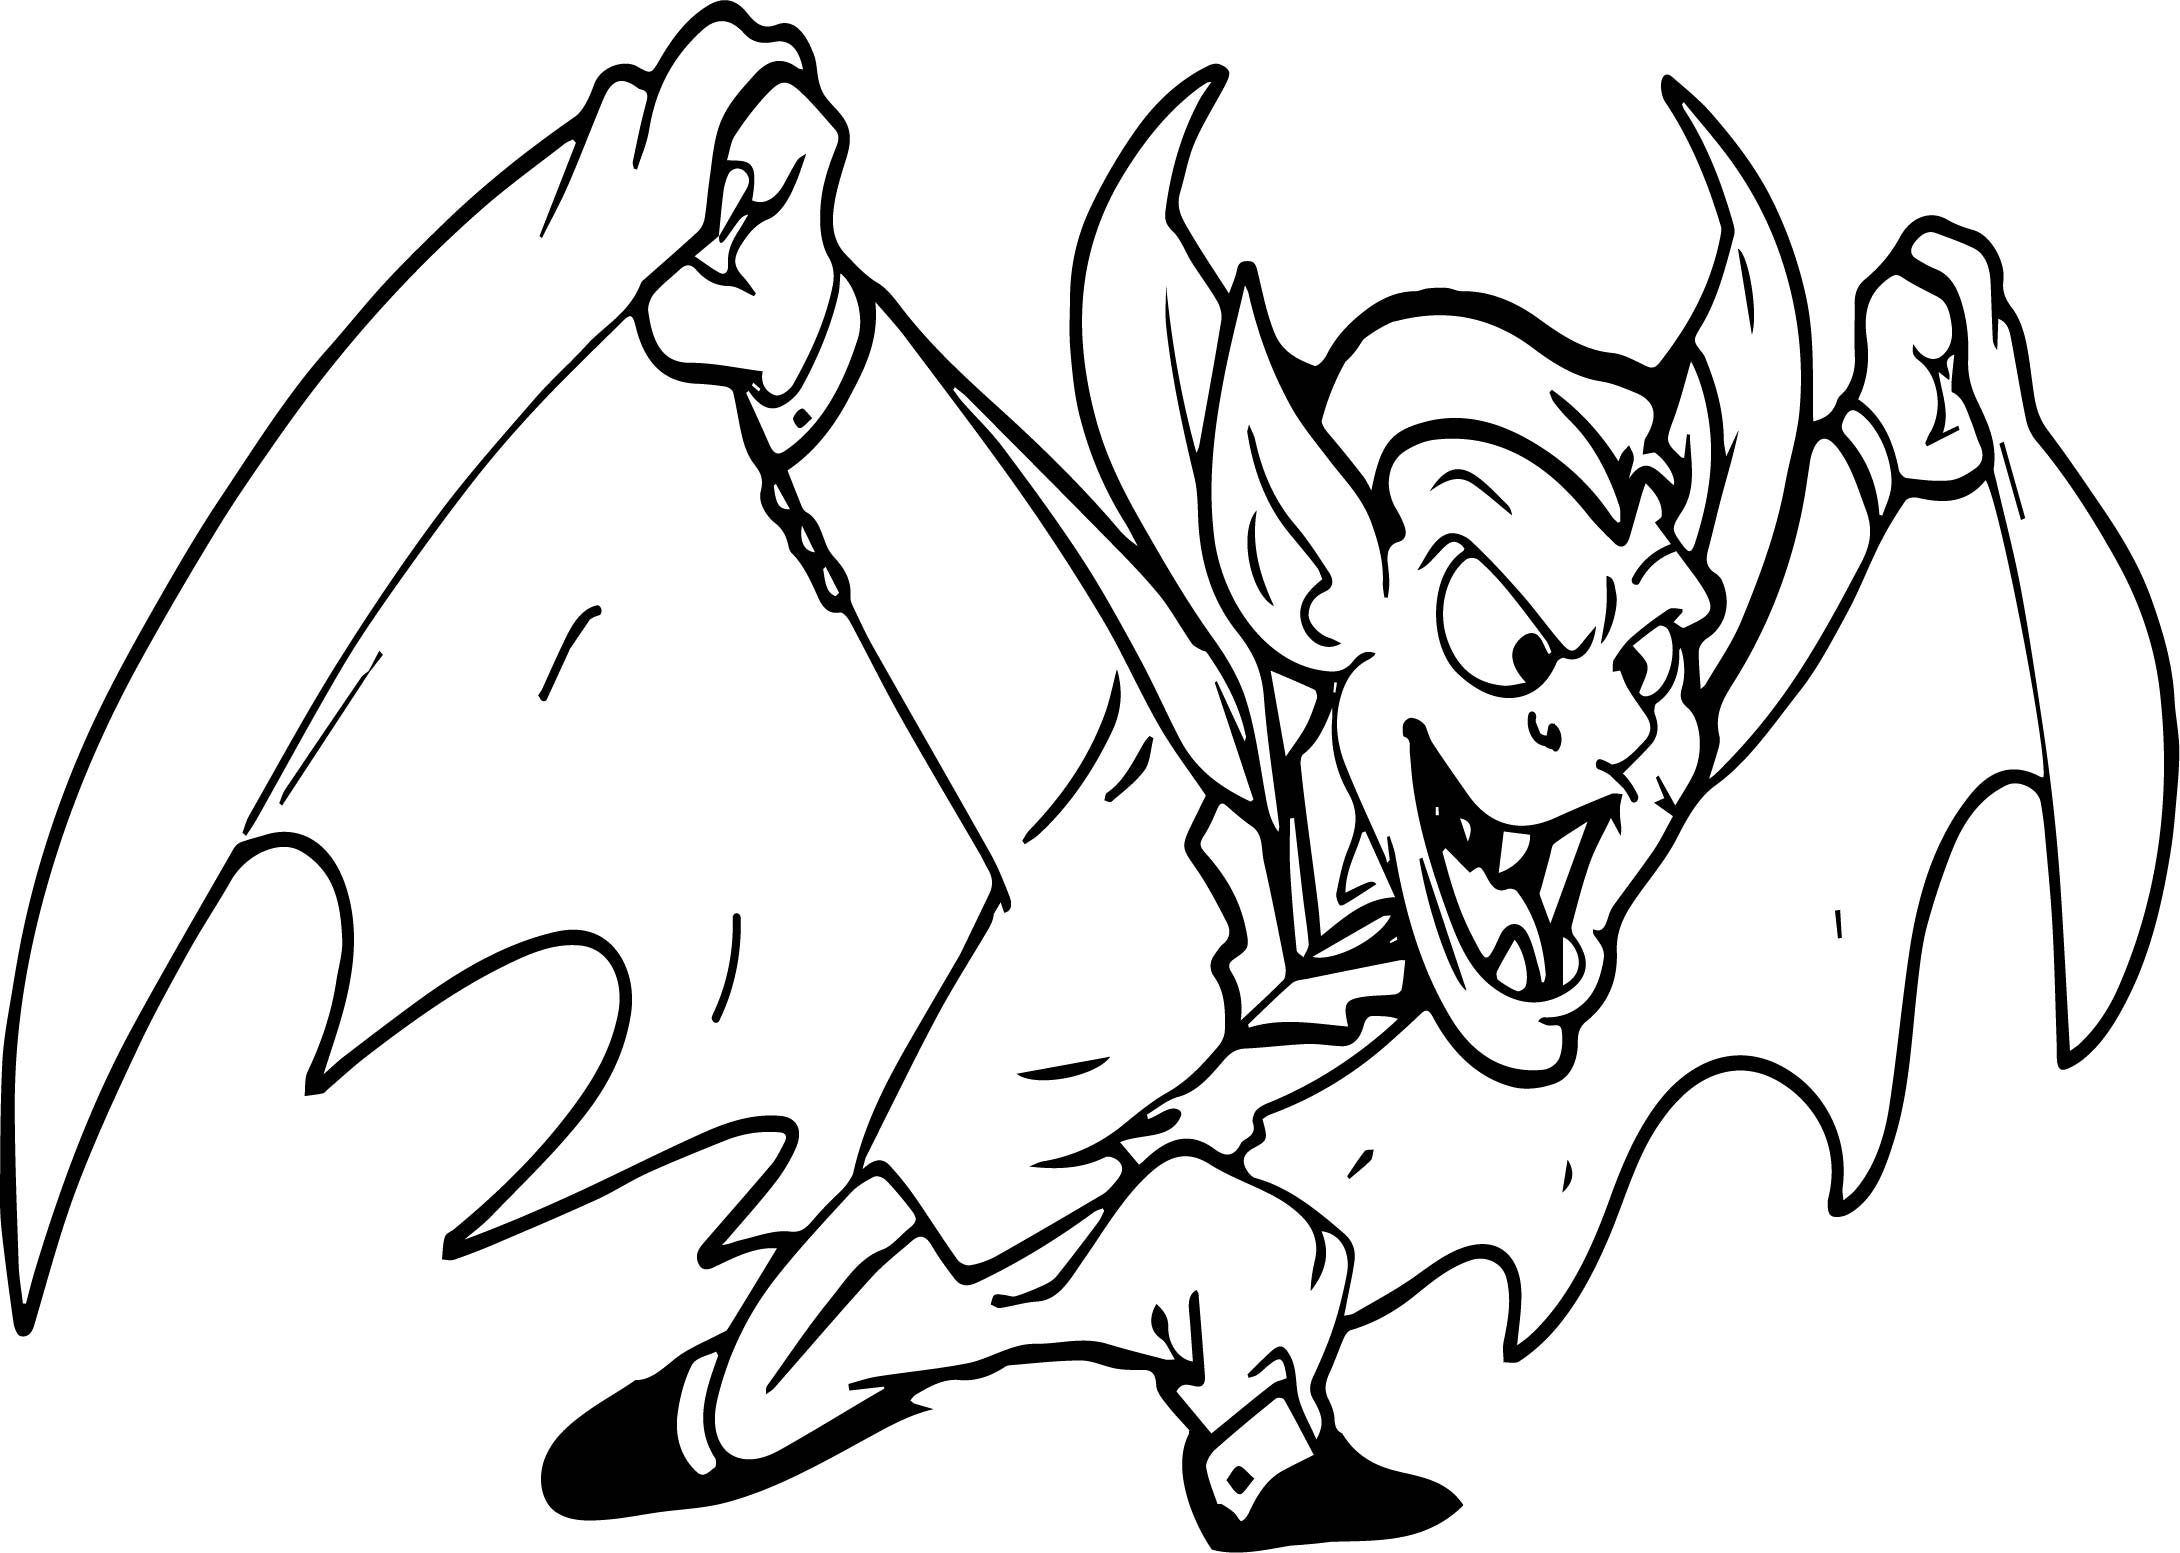 Halloween Vampire Coloring Pages CZFv 1275x1650